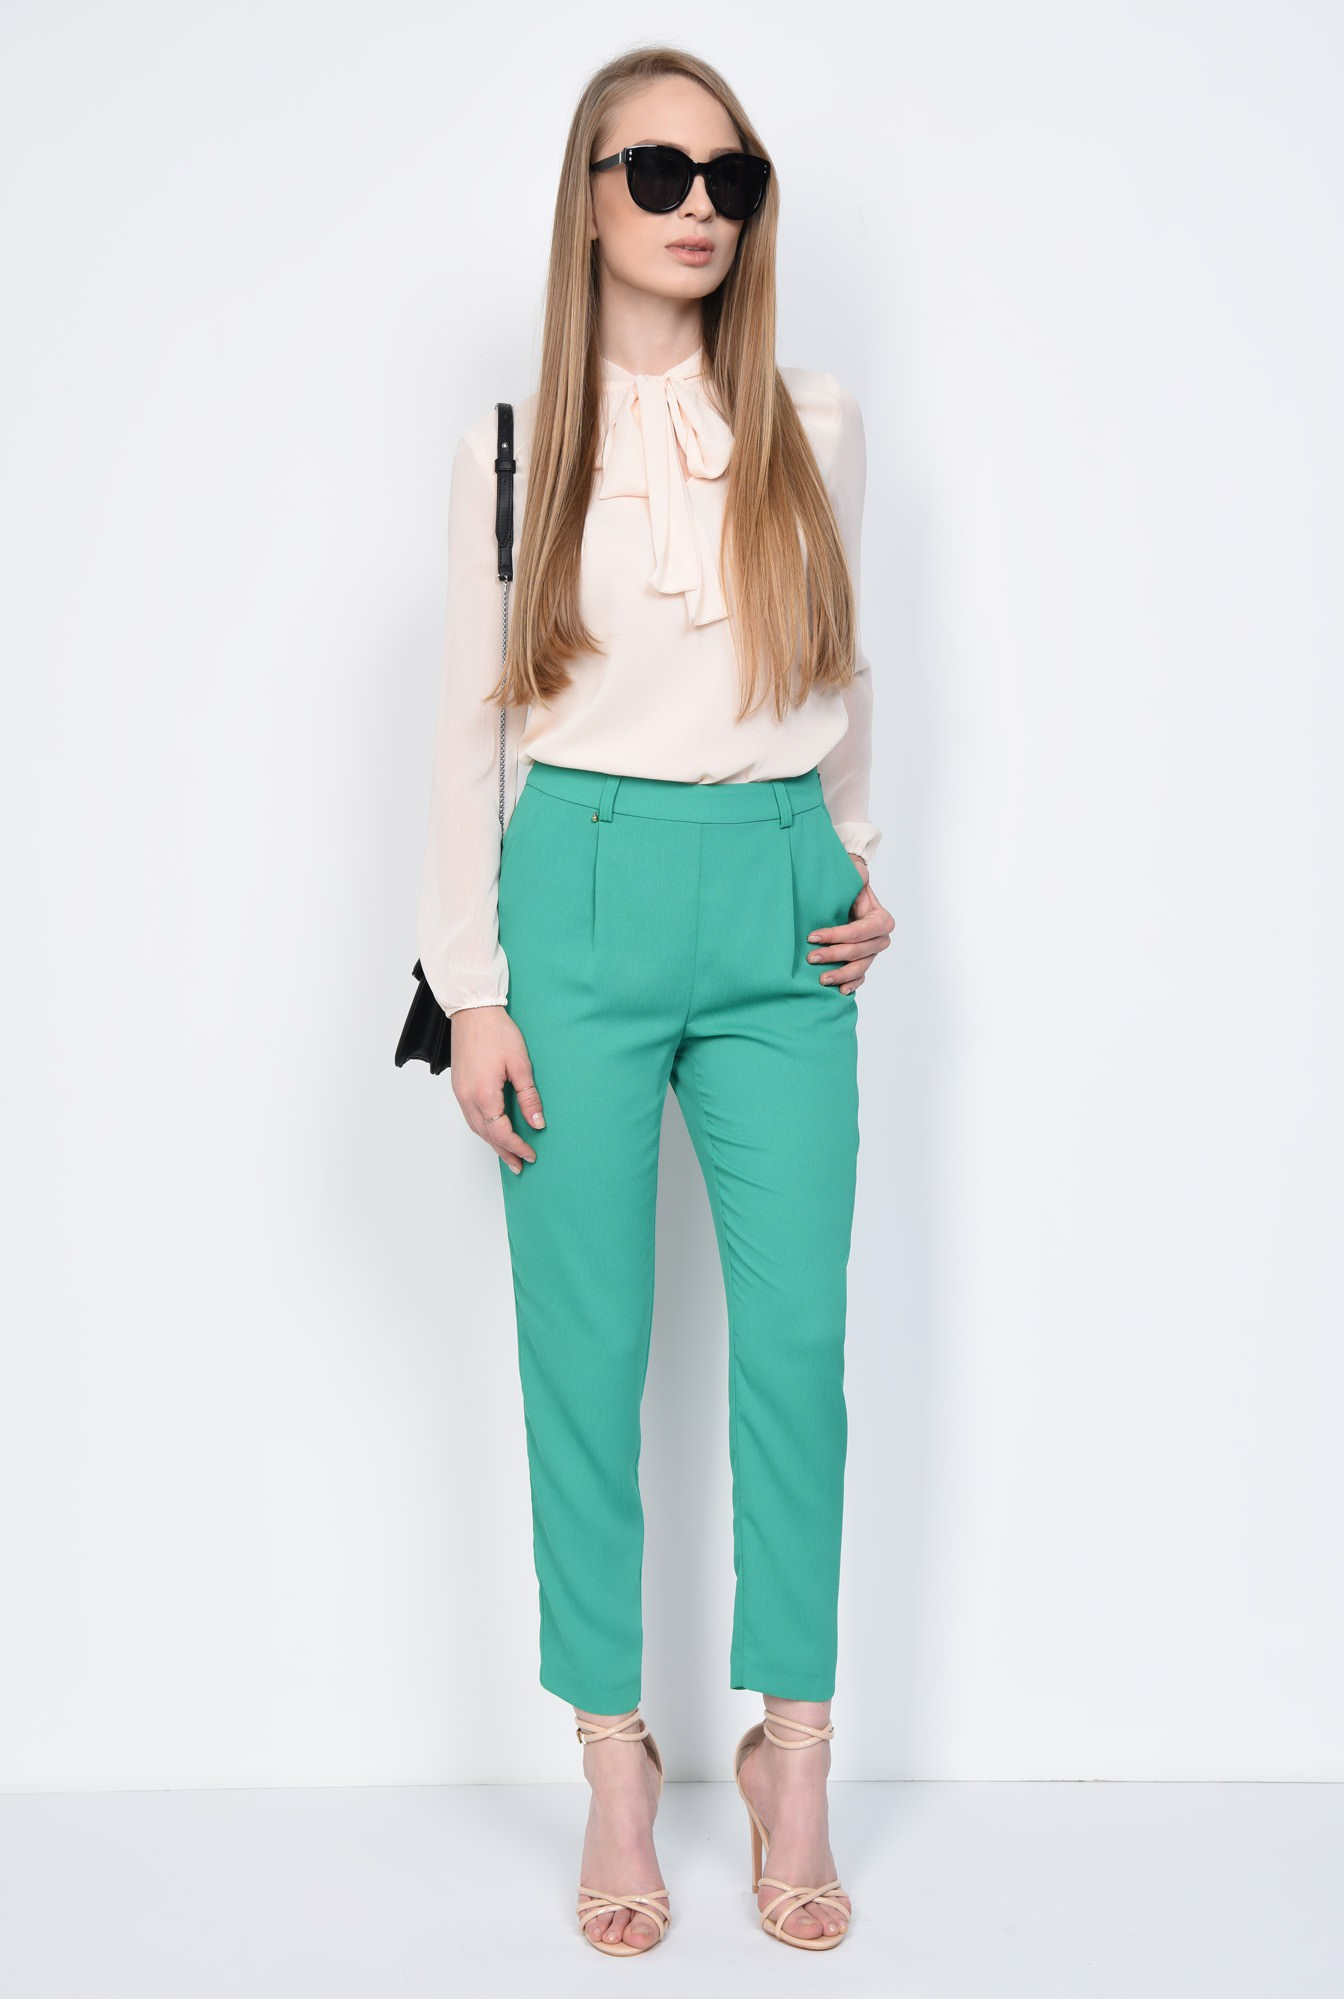 3 - PANTALON CASUAL CONIC PT 155-VERDE